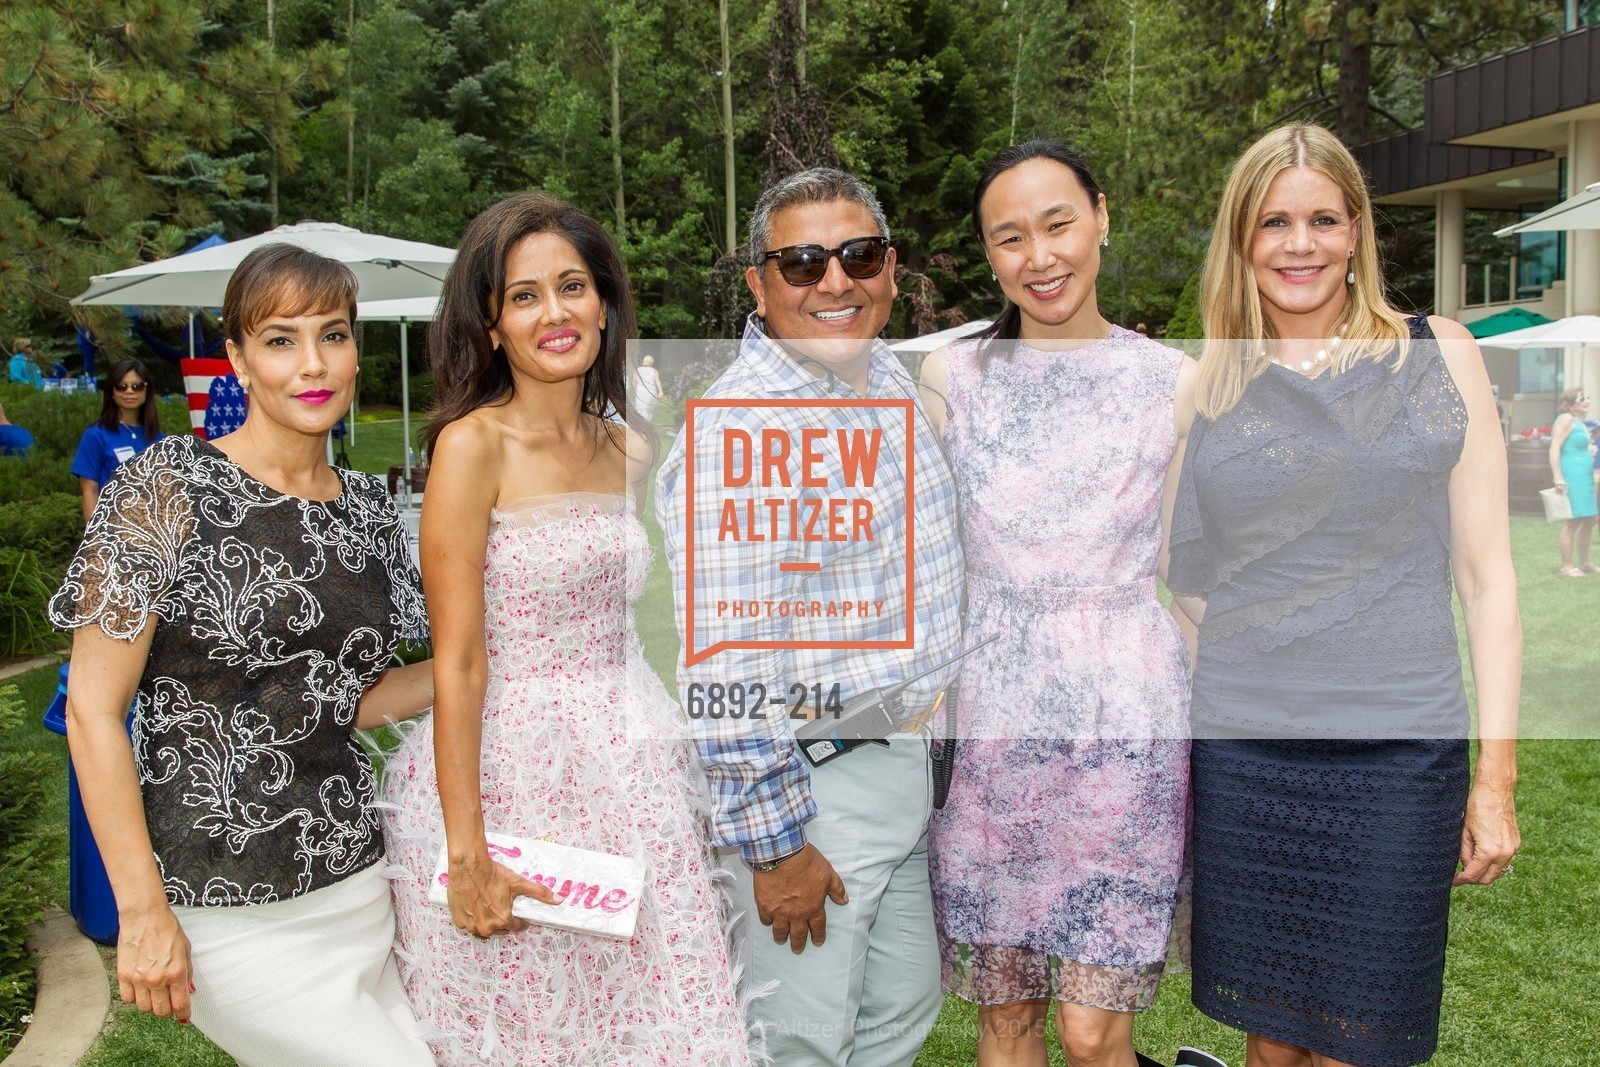 Lora DuBain, Komal Shah, Riccardo Benavides, Carolyn Chang, Mary Beth Shimmon, Saks Fifth Avenue and The League to Save Lake Tahoe Present Fashion on the Lake, Private Residence, August 1st, 2015,Drew Altizer, Drew Altizer Photography, full-service event agency, private events, San Francisco photographer, photographer California